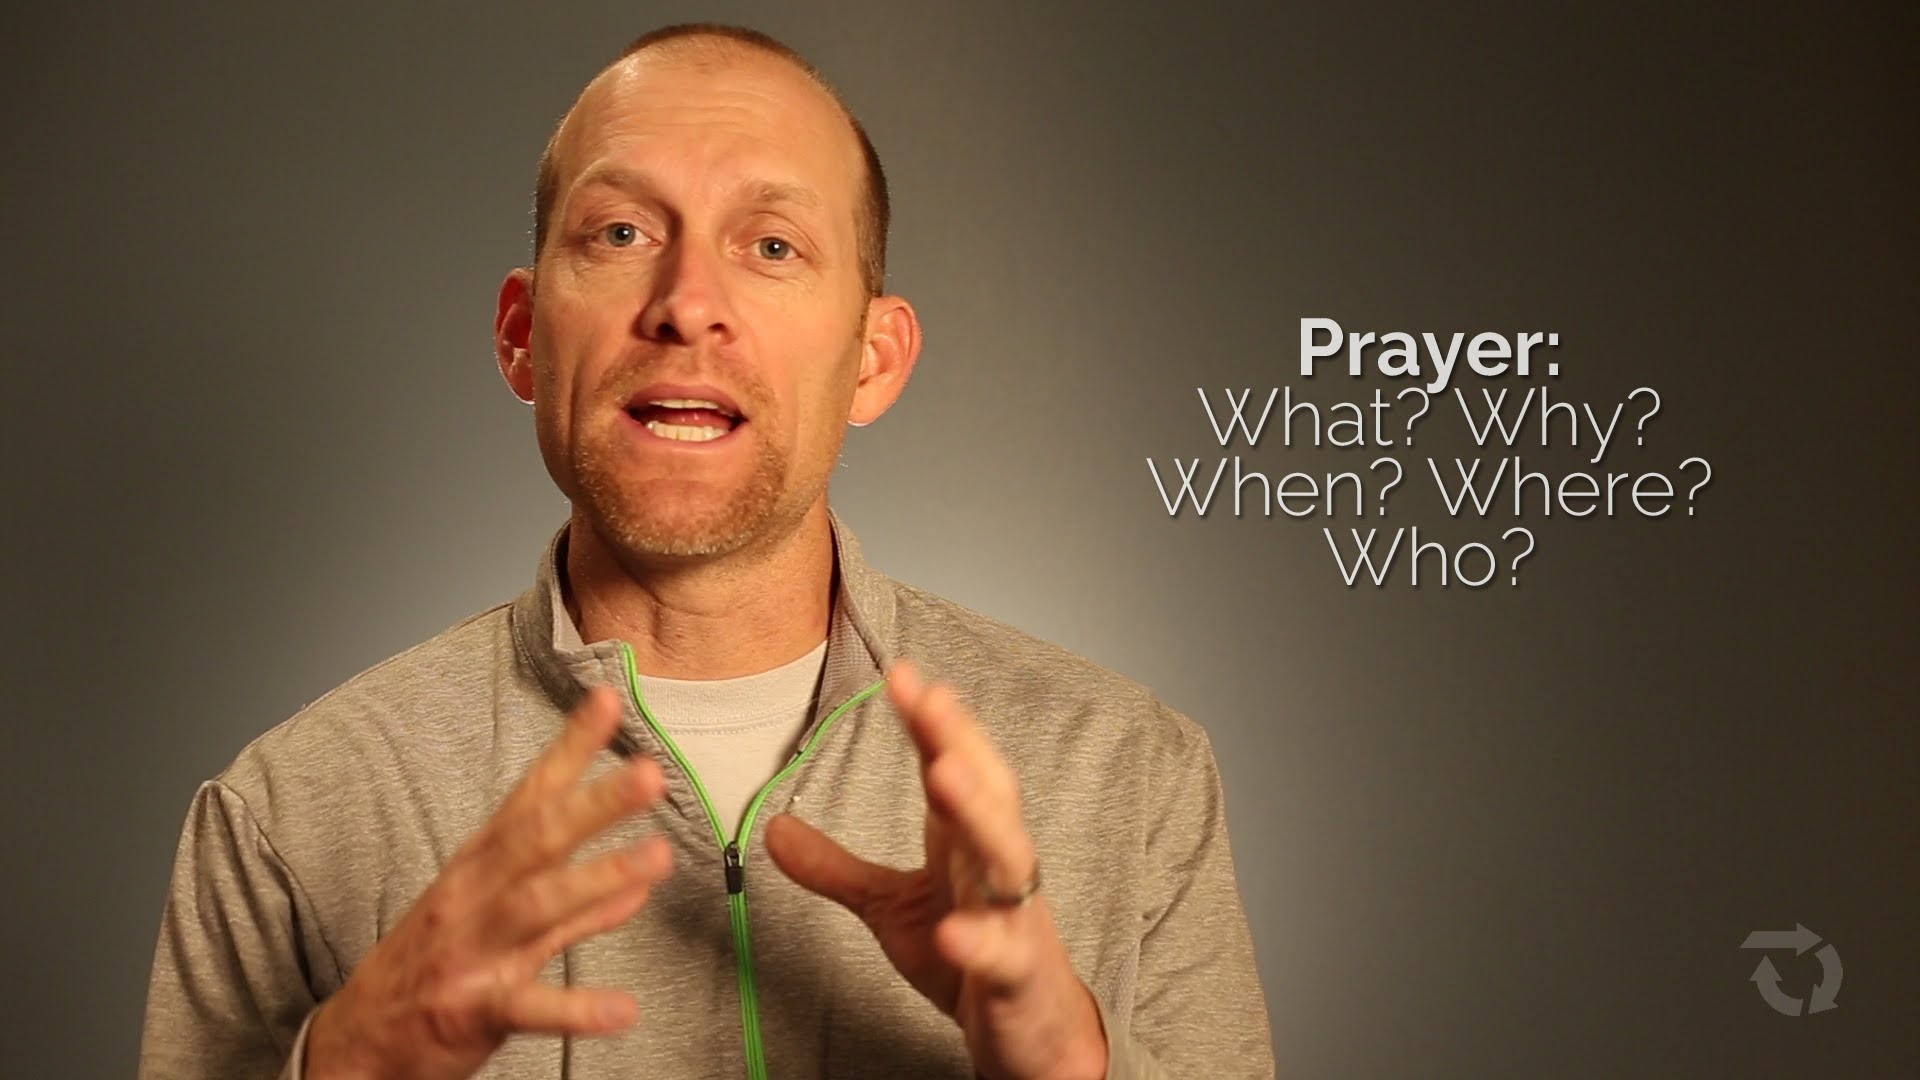 Prayer: What? Why? When? Where? Who?